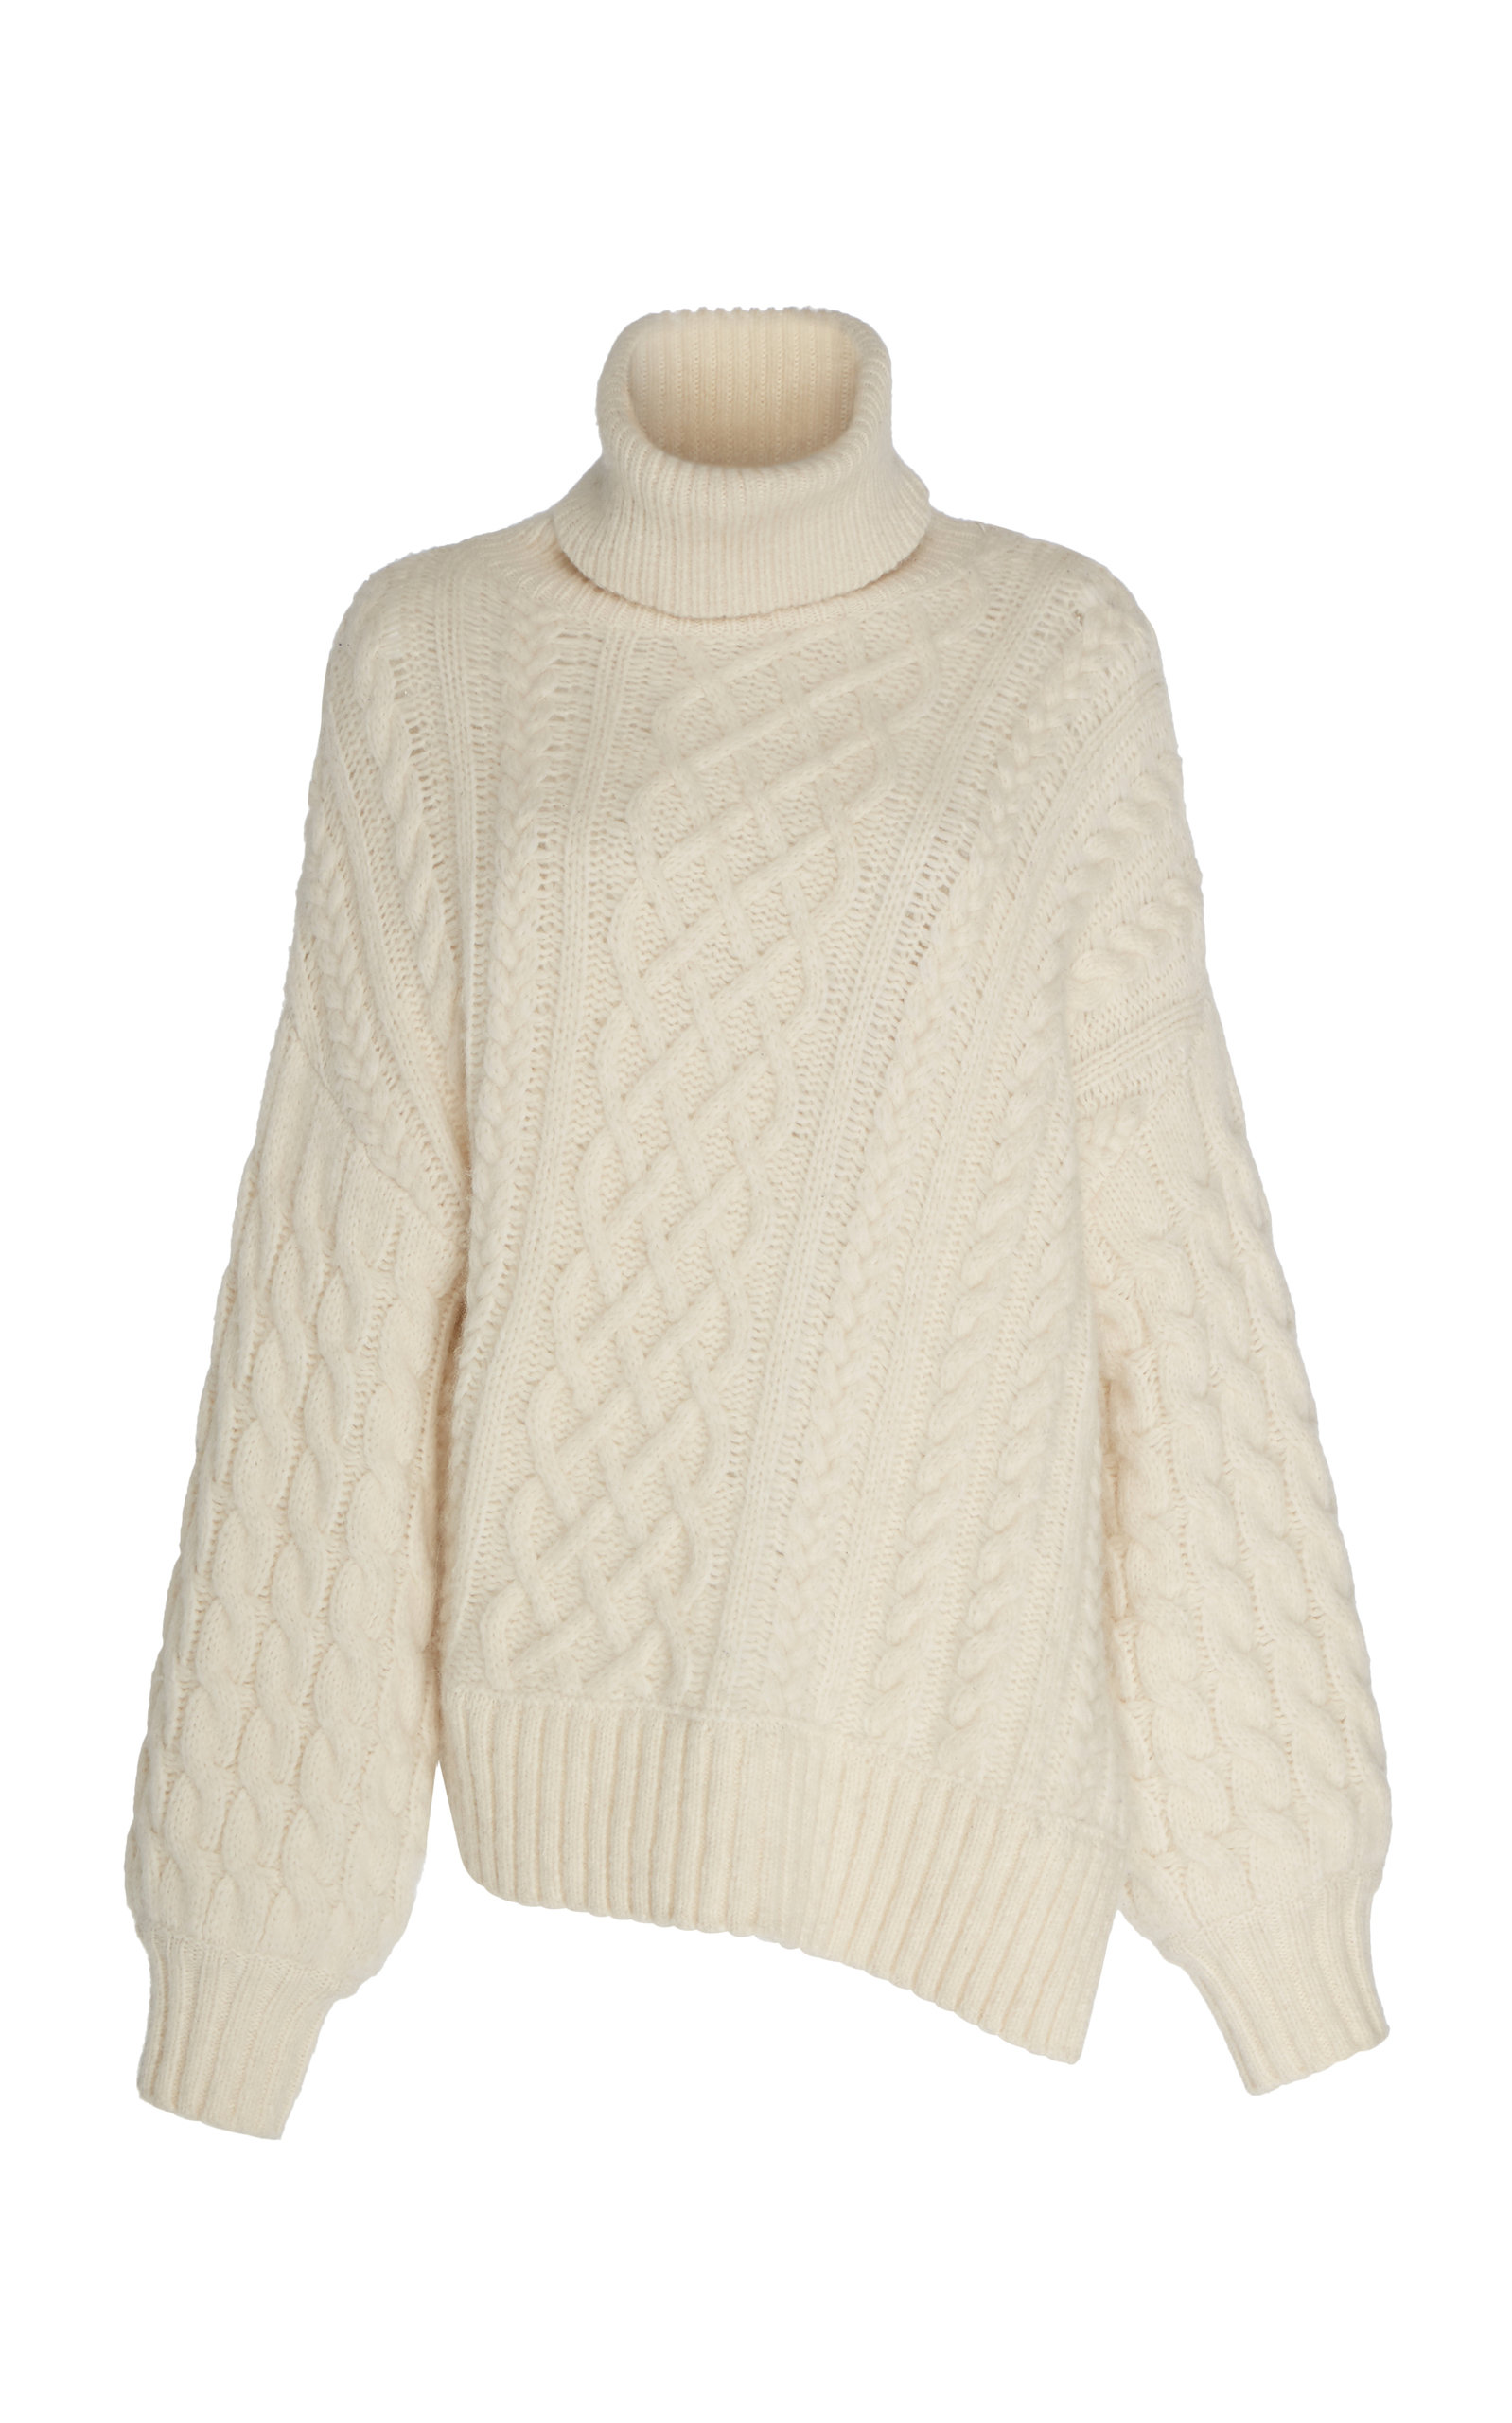 A.l.c Knits NEVELSON CABLE-KNIT WOOL TURTLENECK SWEATER